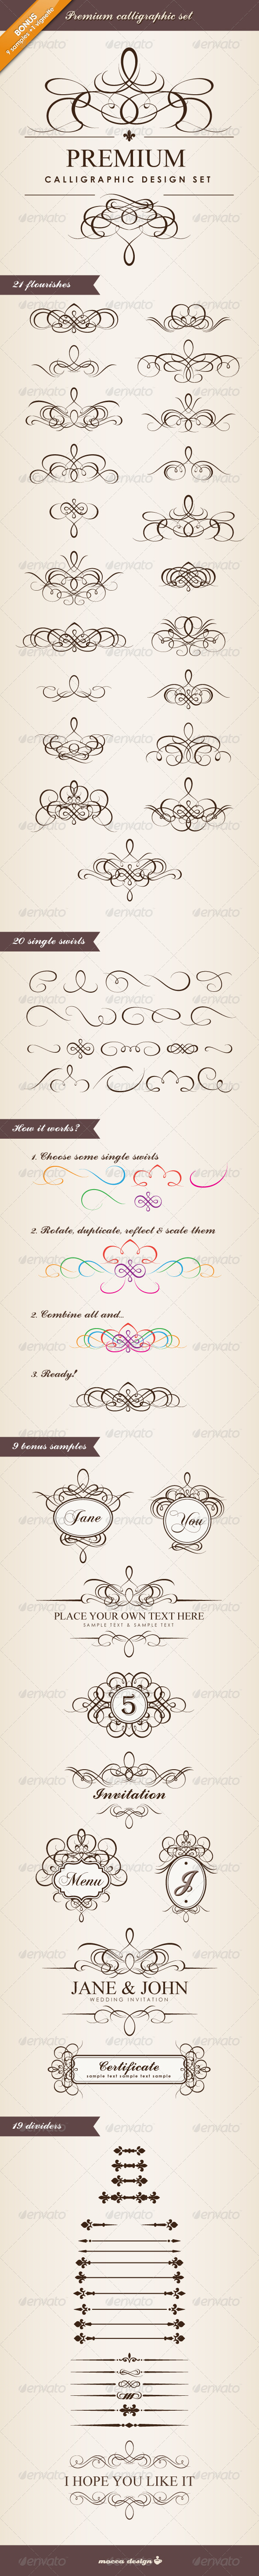 GraphicRiver Premium Calligraphic Design Set 1585547